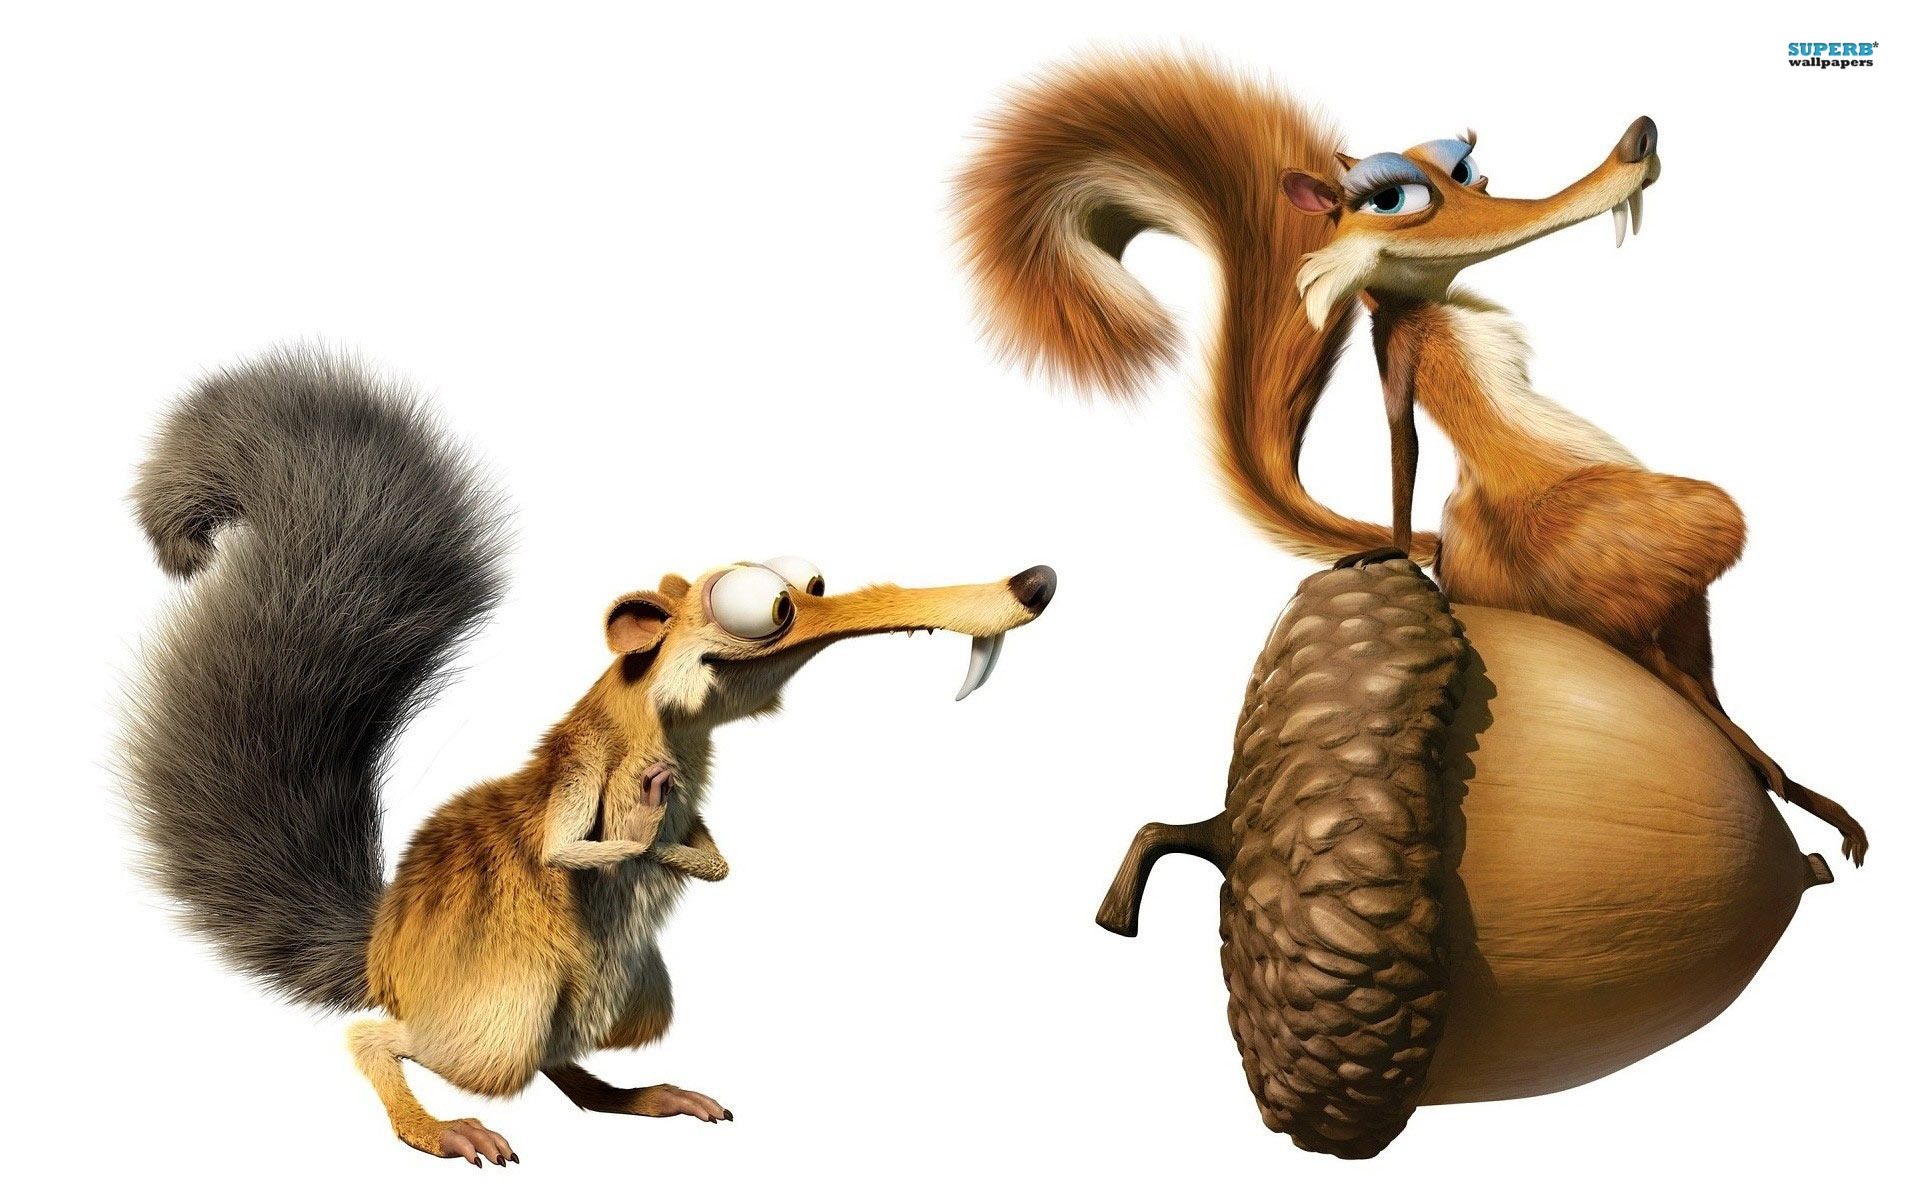 ice age 1 2 3 4 squirrels hd scrat wall paper